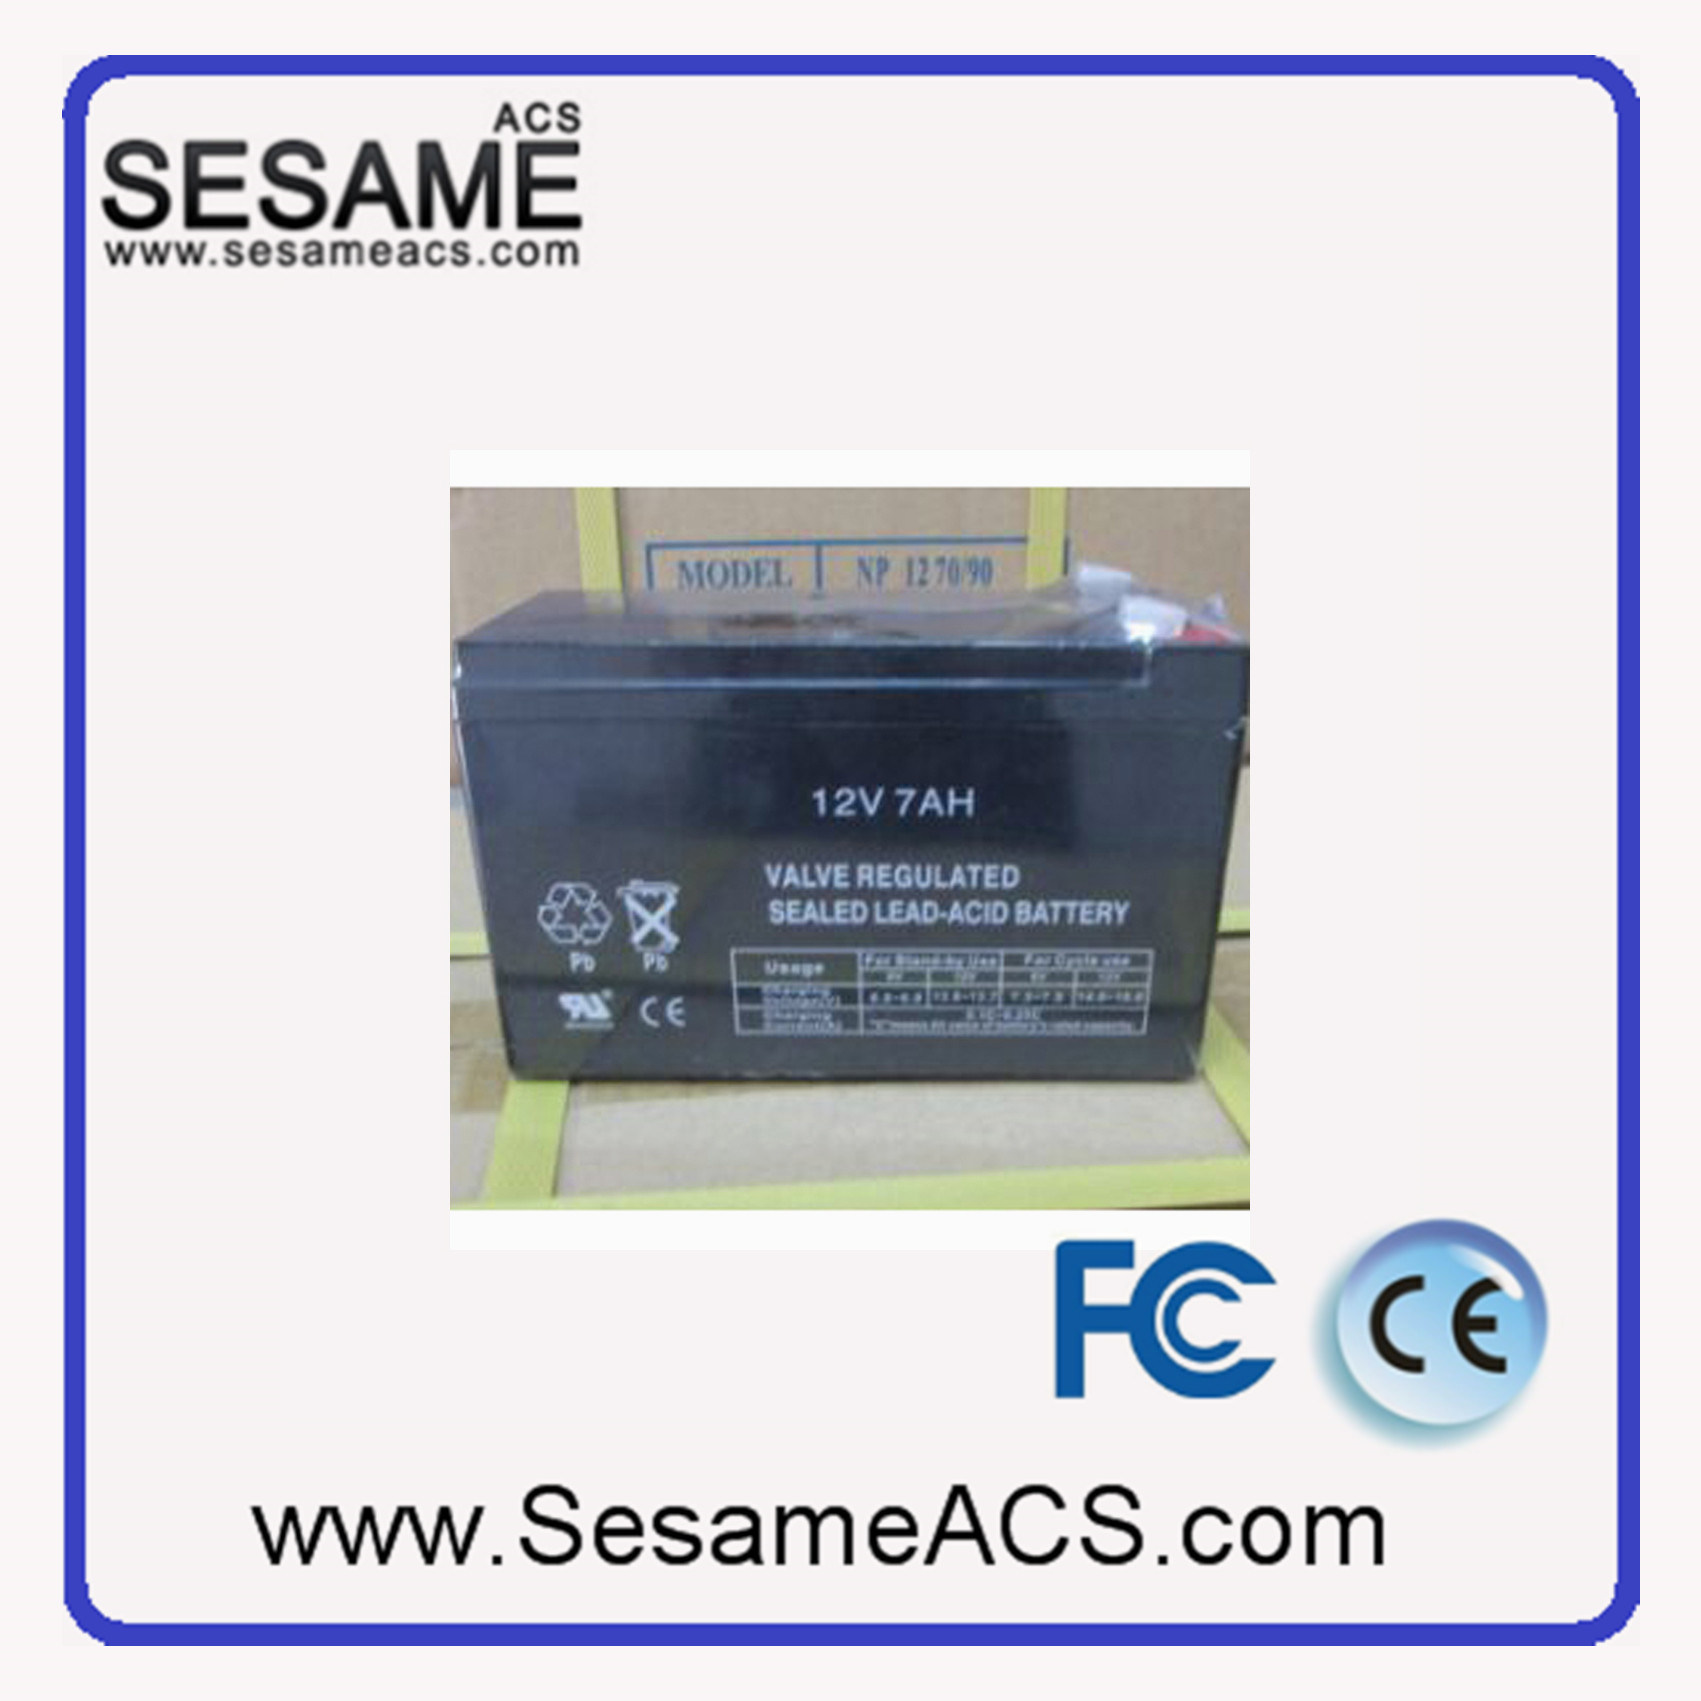 Access Control Power Supply with Battery Back up 12V (KPSB-3A)